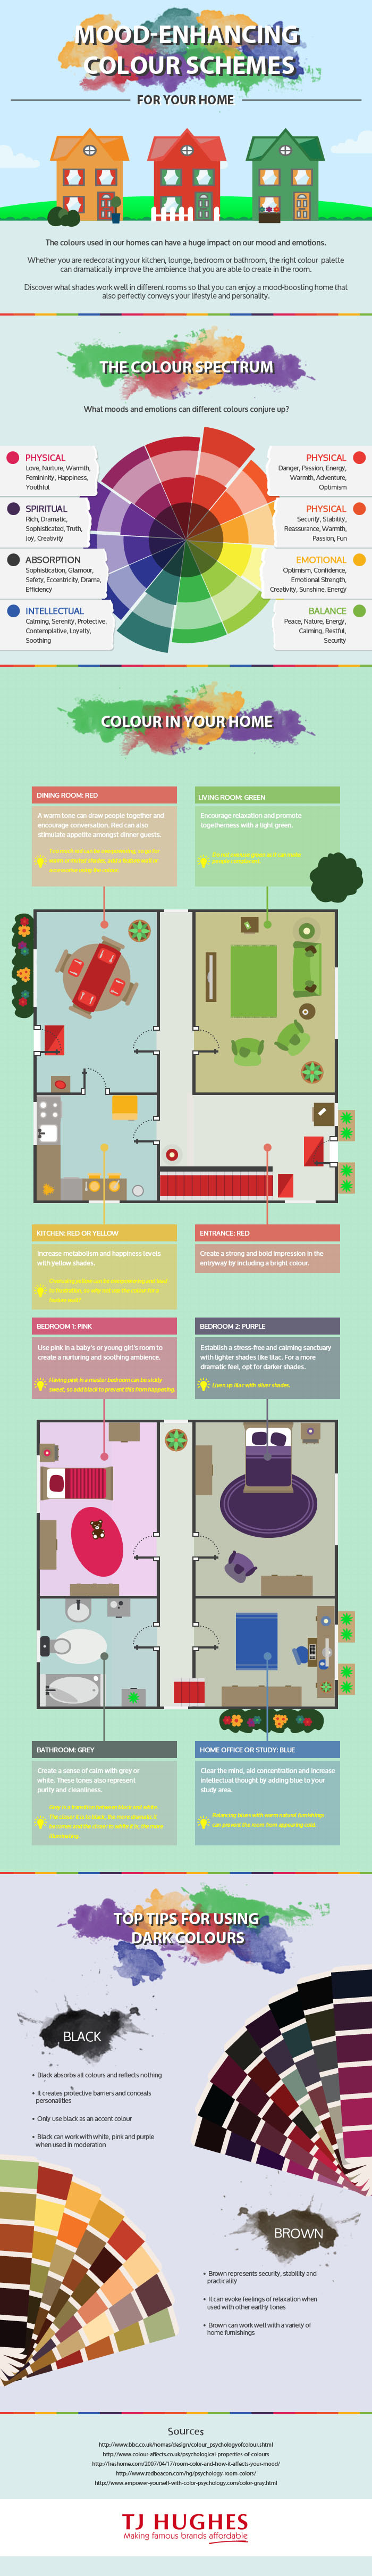 Infographic: Mood-Enhancing Colour Schemes for your Home